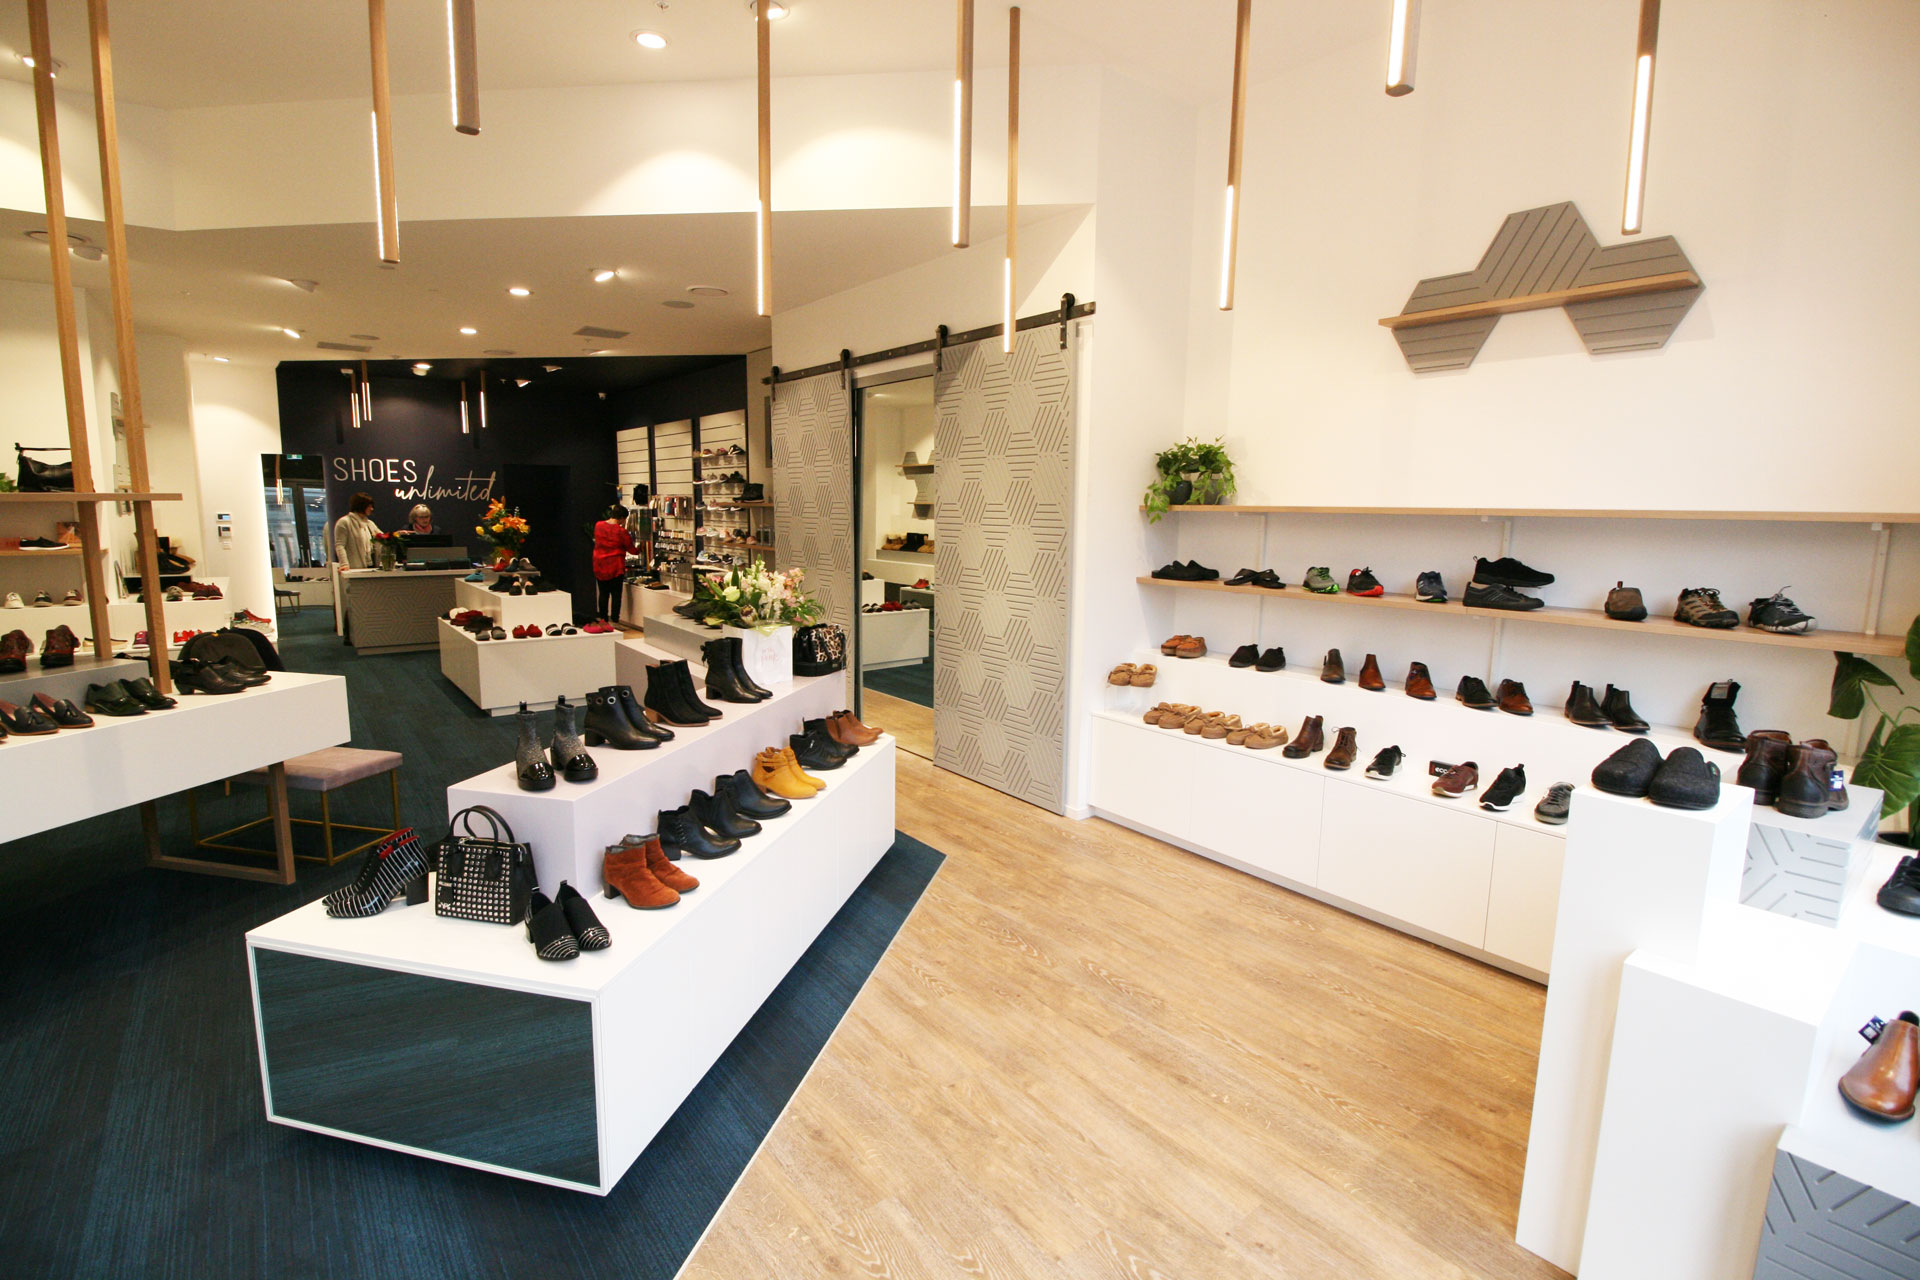 Shoes-shop-fitout-Queenstown